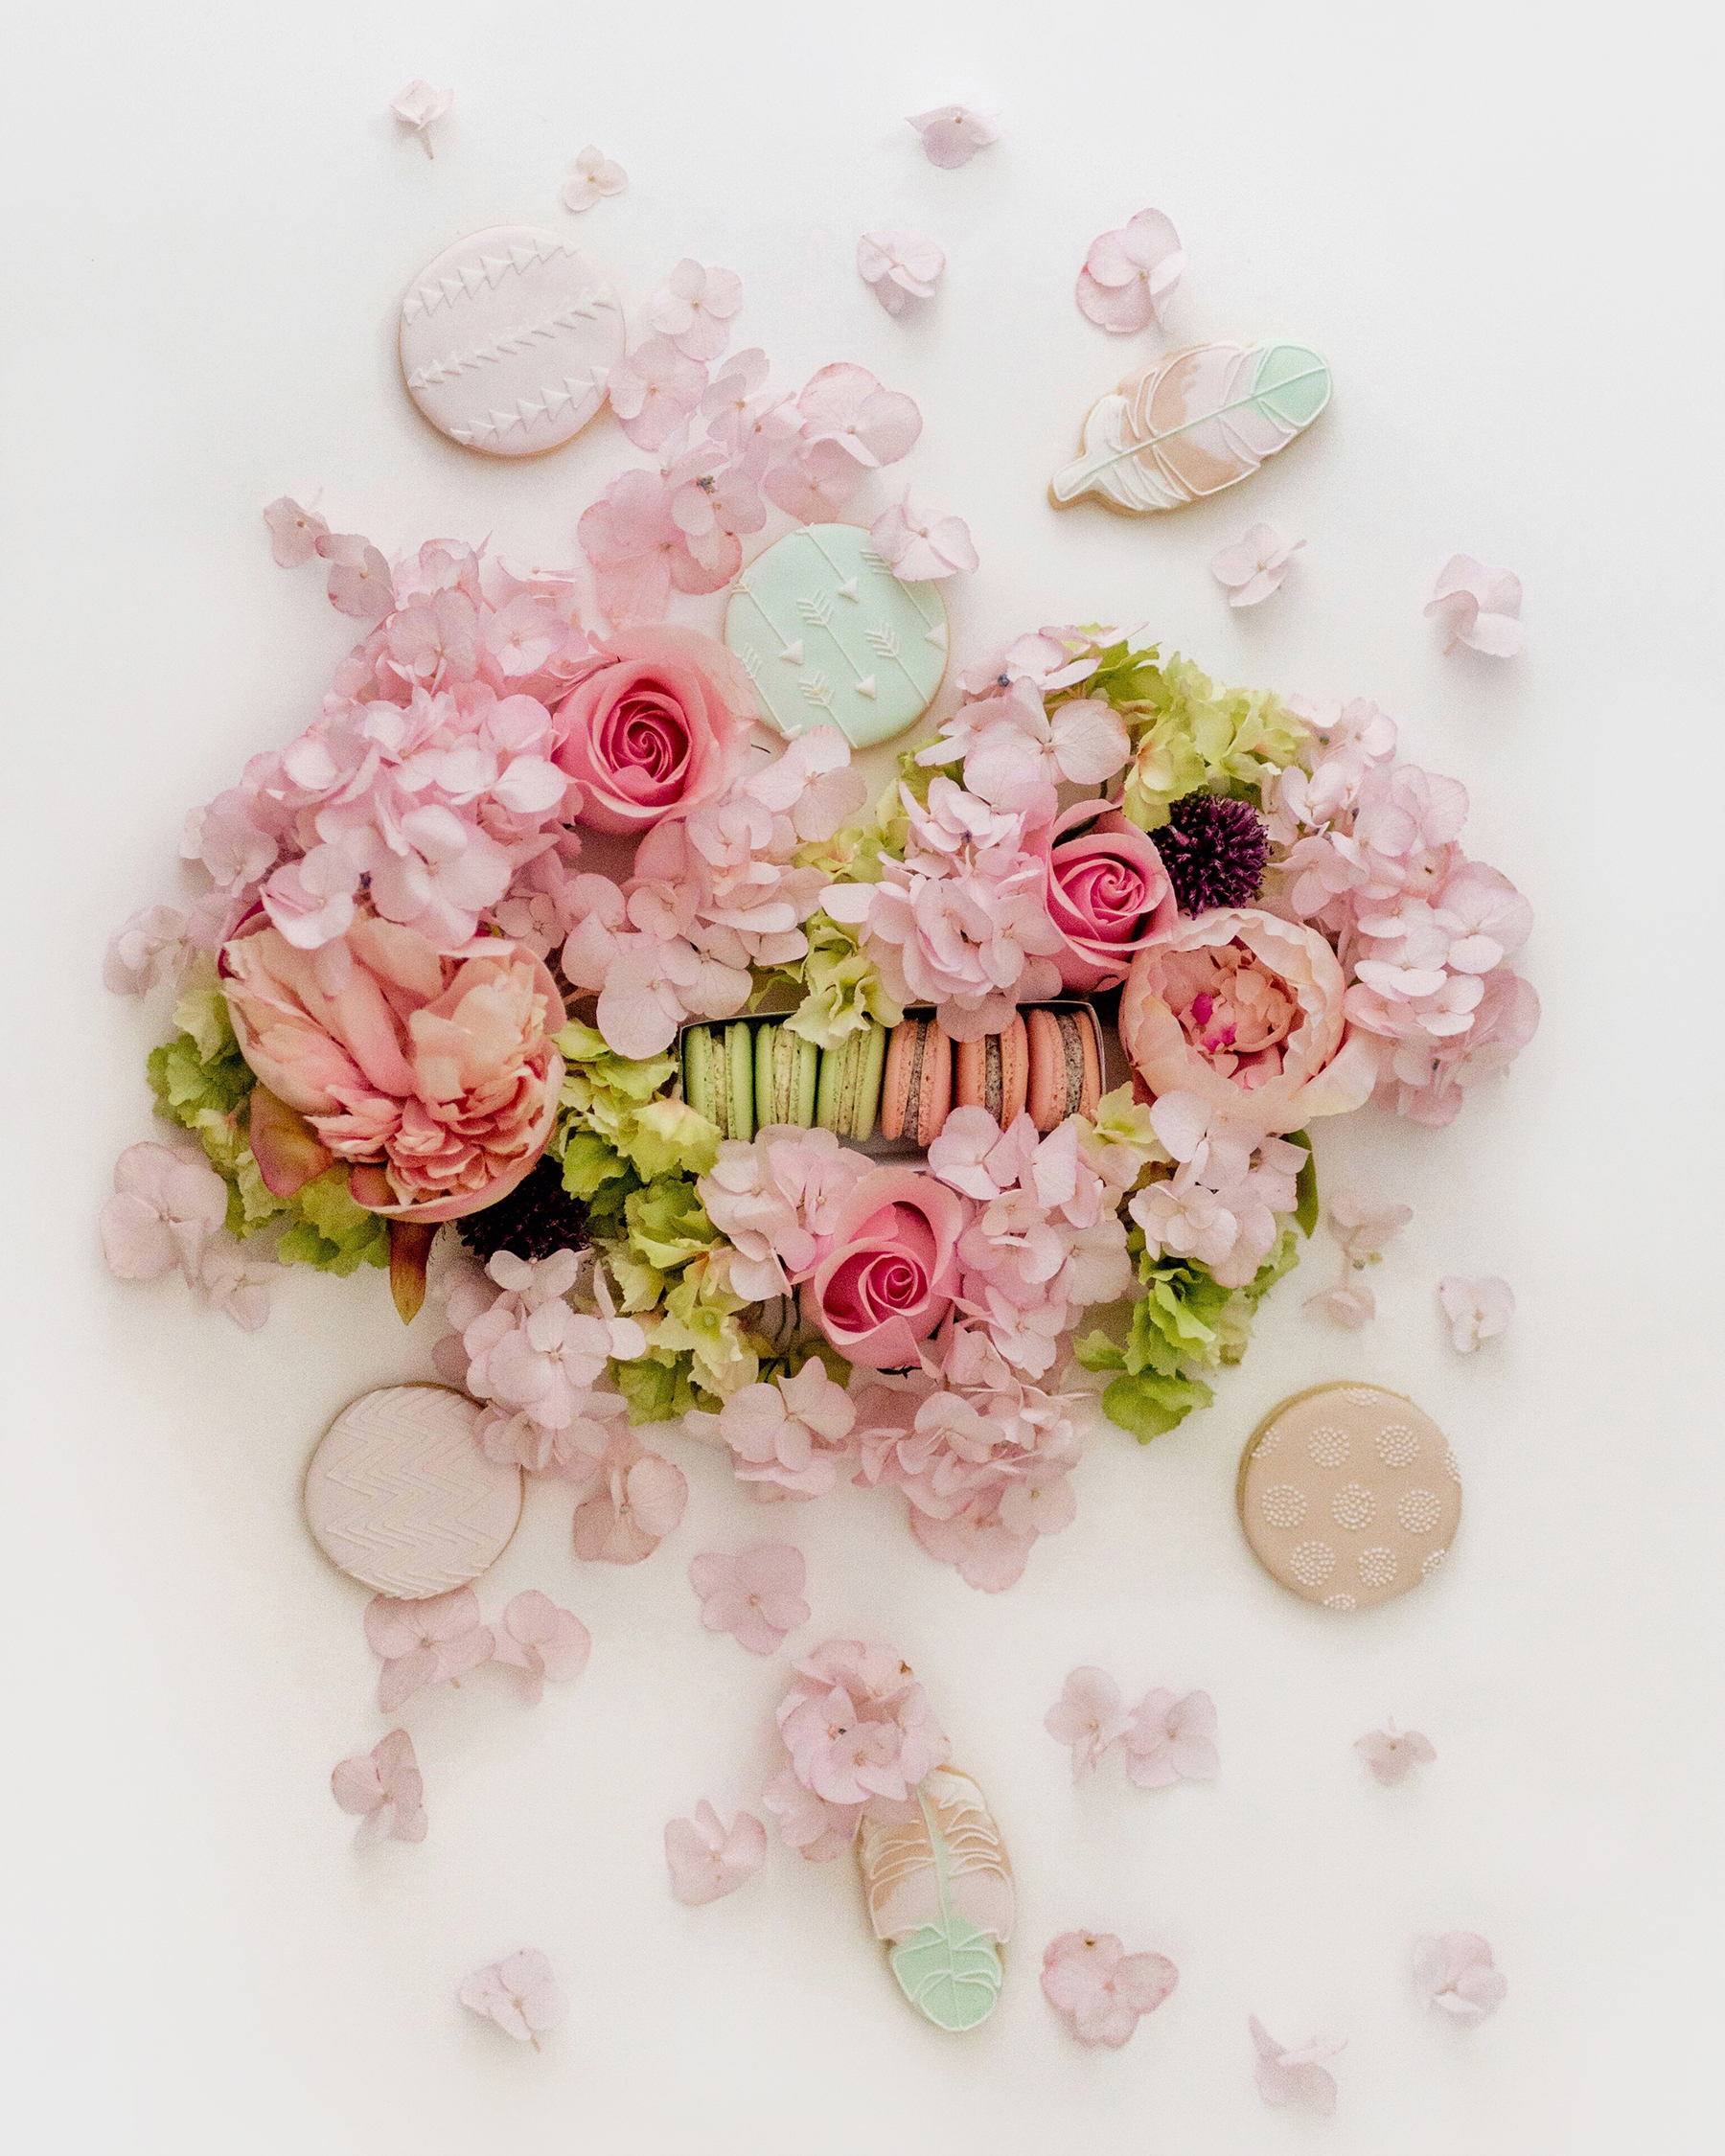 Flower, macaron + cookie flatlay | A wild + boho baby shower with pastels and rustic details